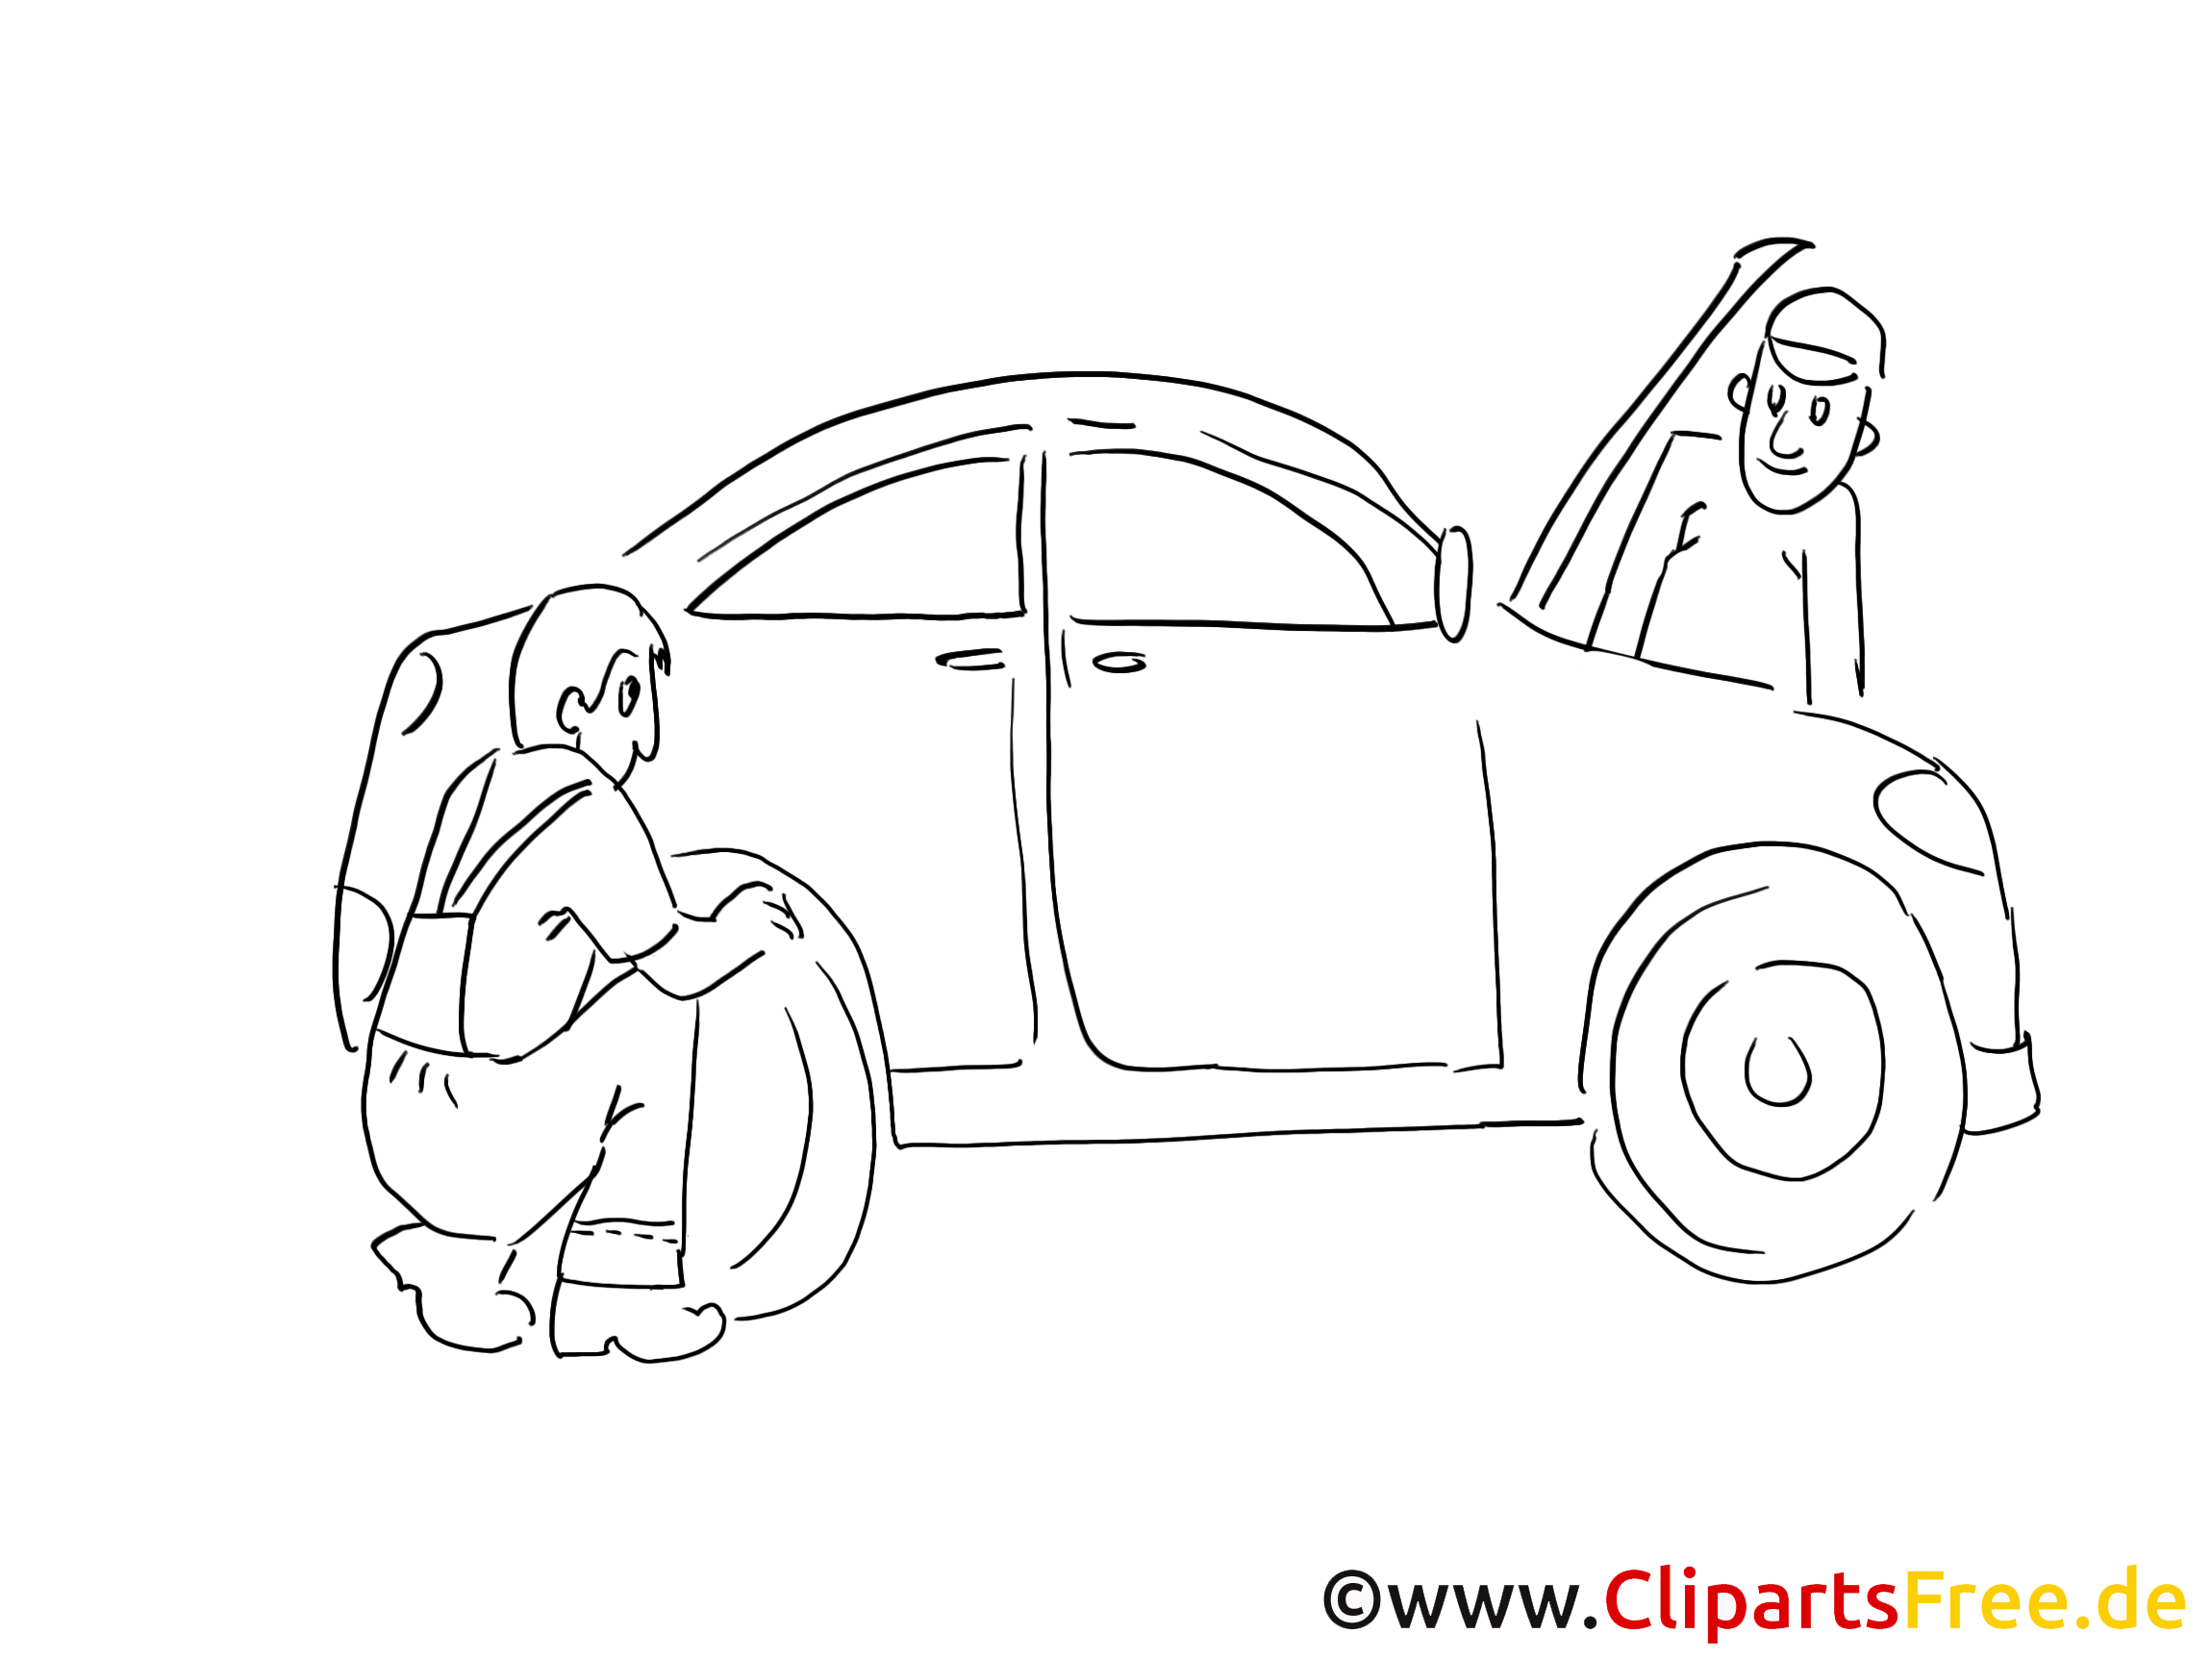 Tires service clip art black and white, graphic, pic, cartoon, comic free